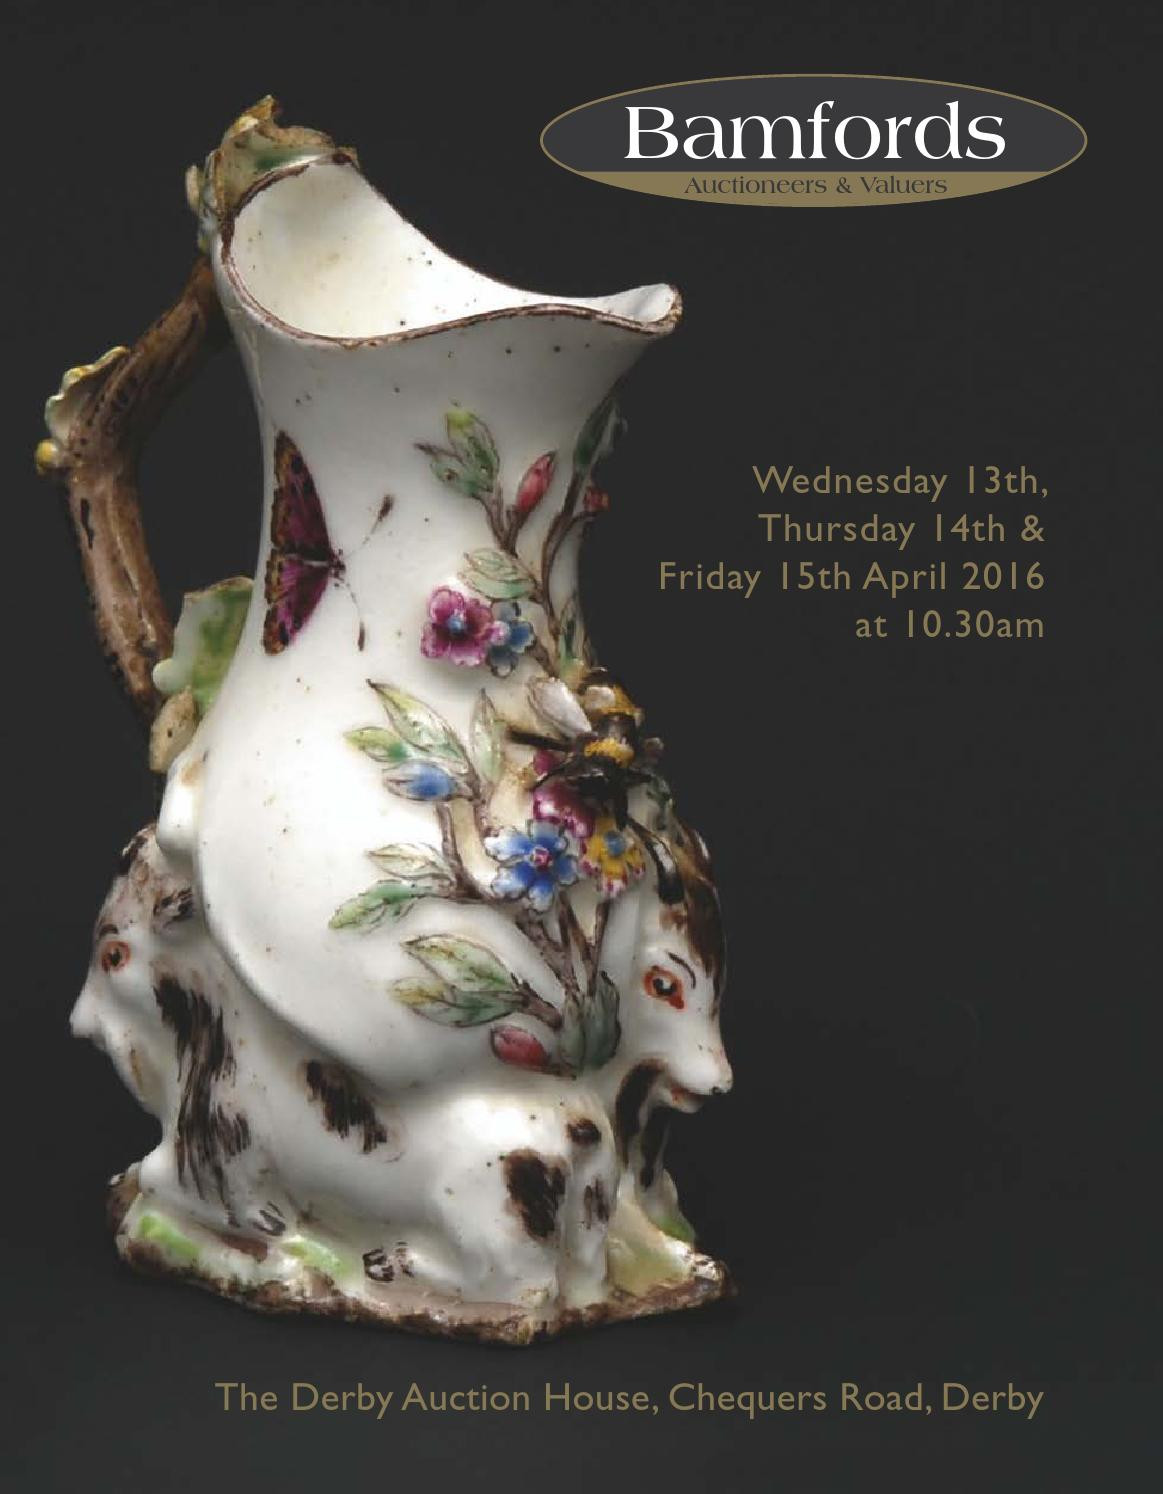 lalique sylvie dove vase of bamfords auctioneers by jamm design ltd issuu within page 1